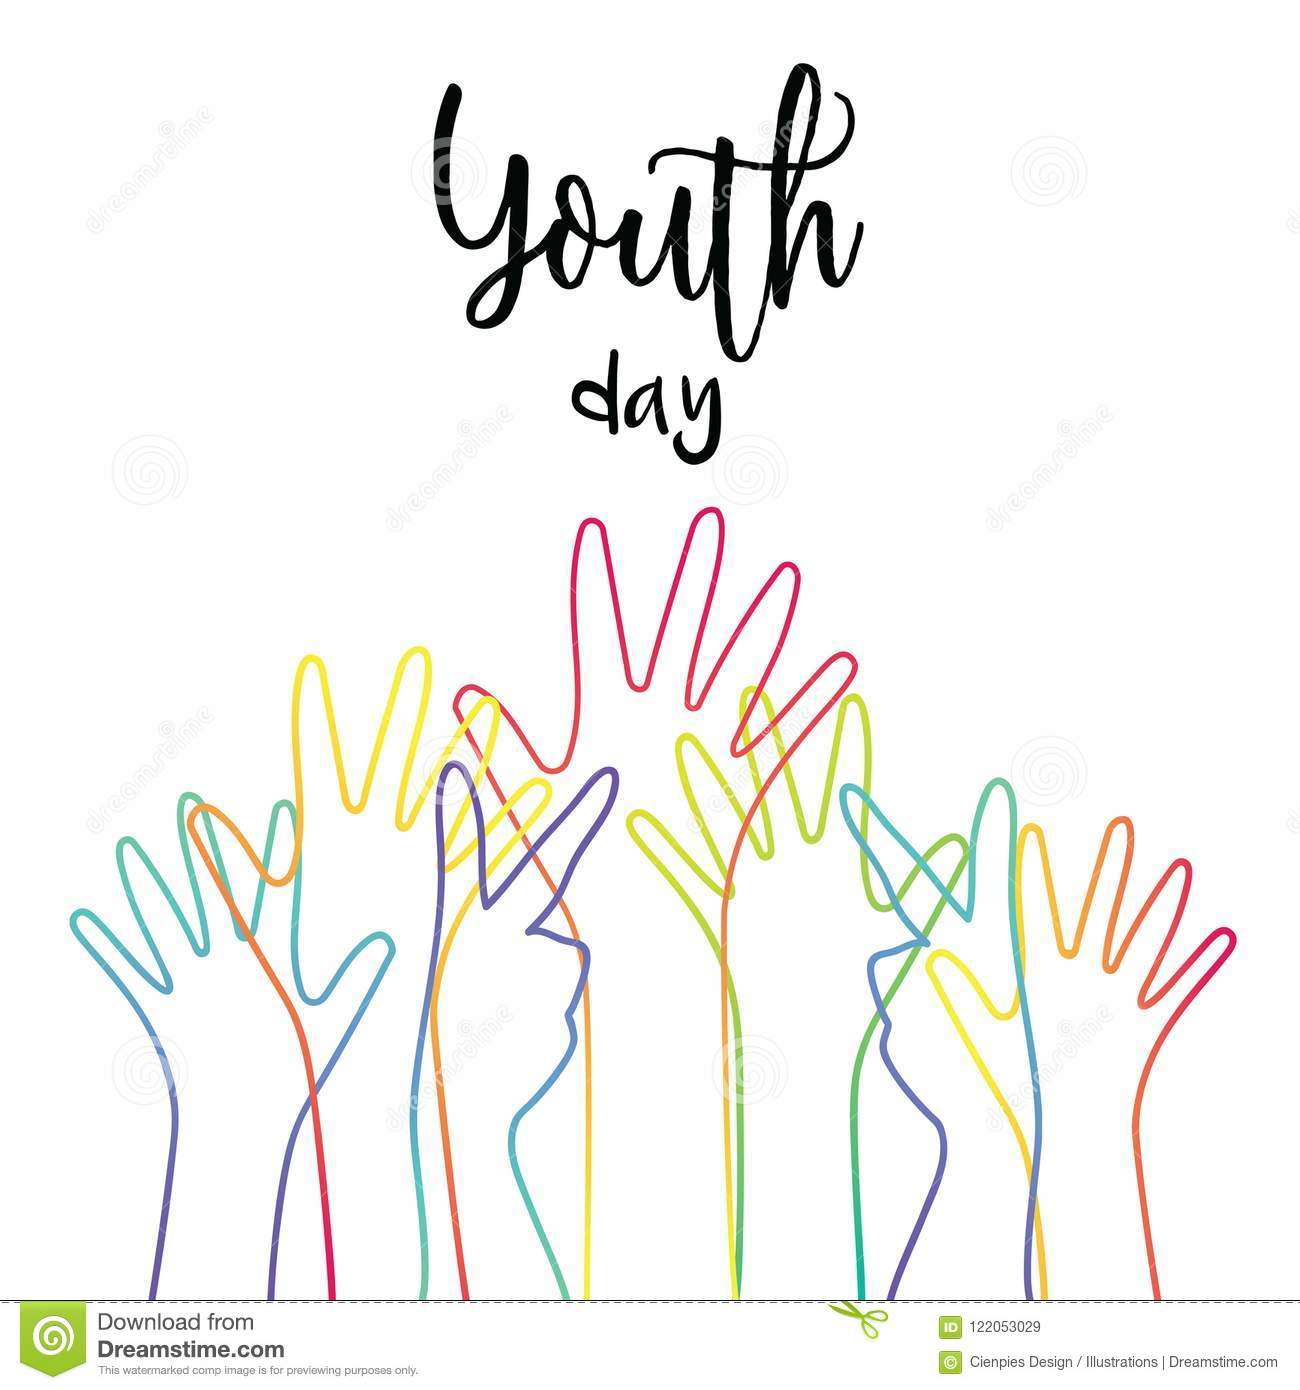 Youth day diverse teen hands greeting card stock vector download youth day diverse teen hands greeting card stock vector illustration of group greeting m4hsunfo